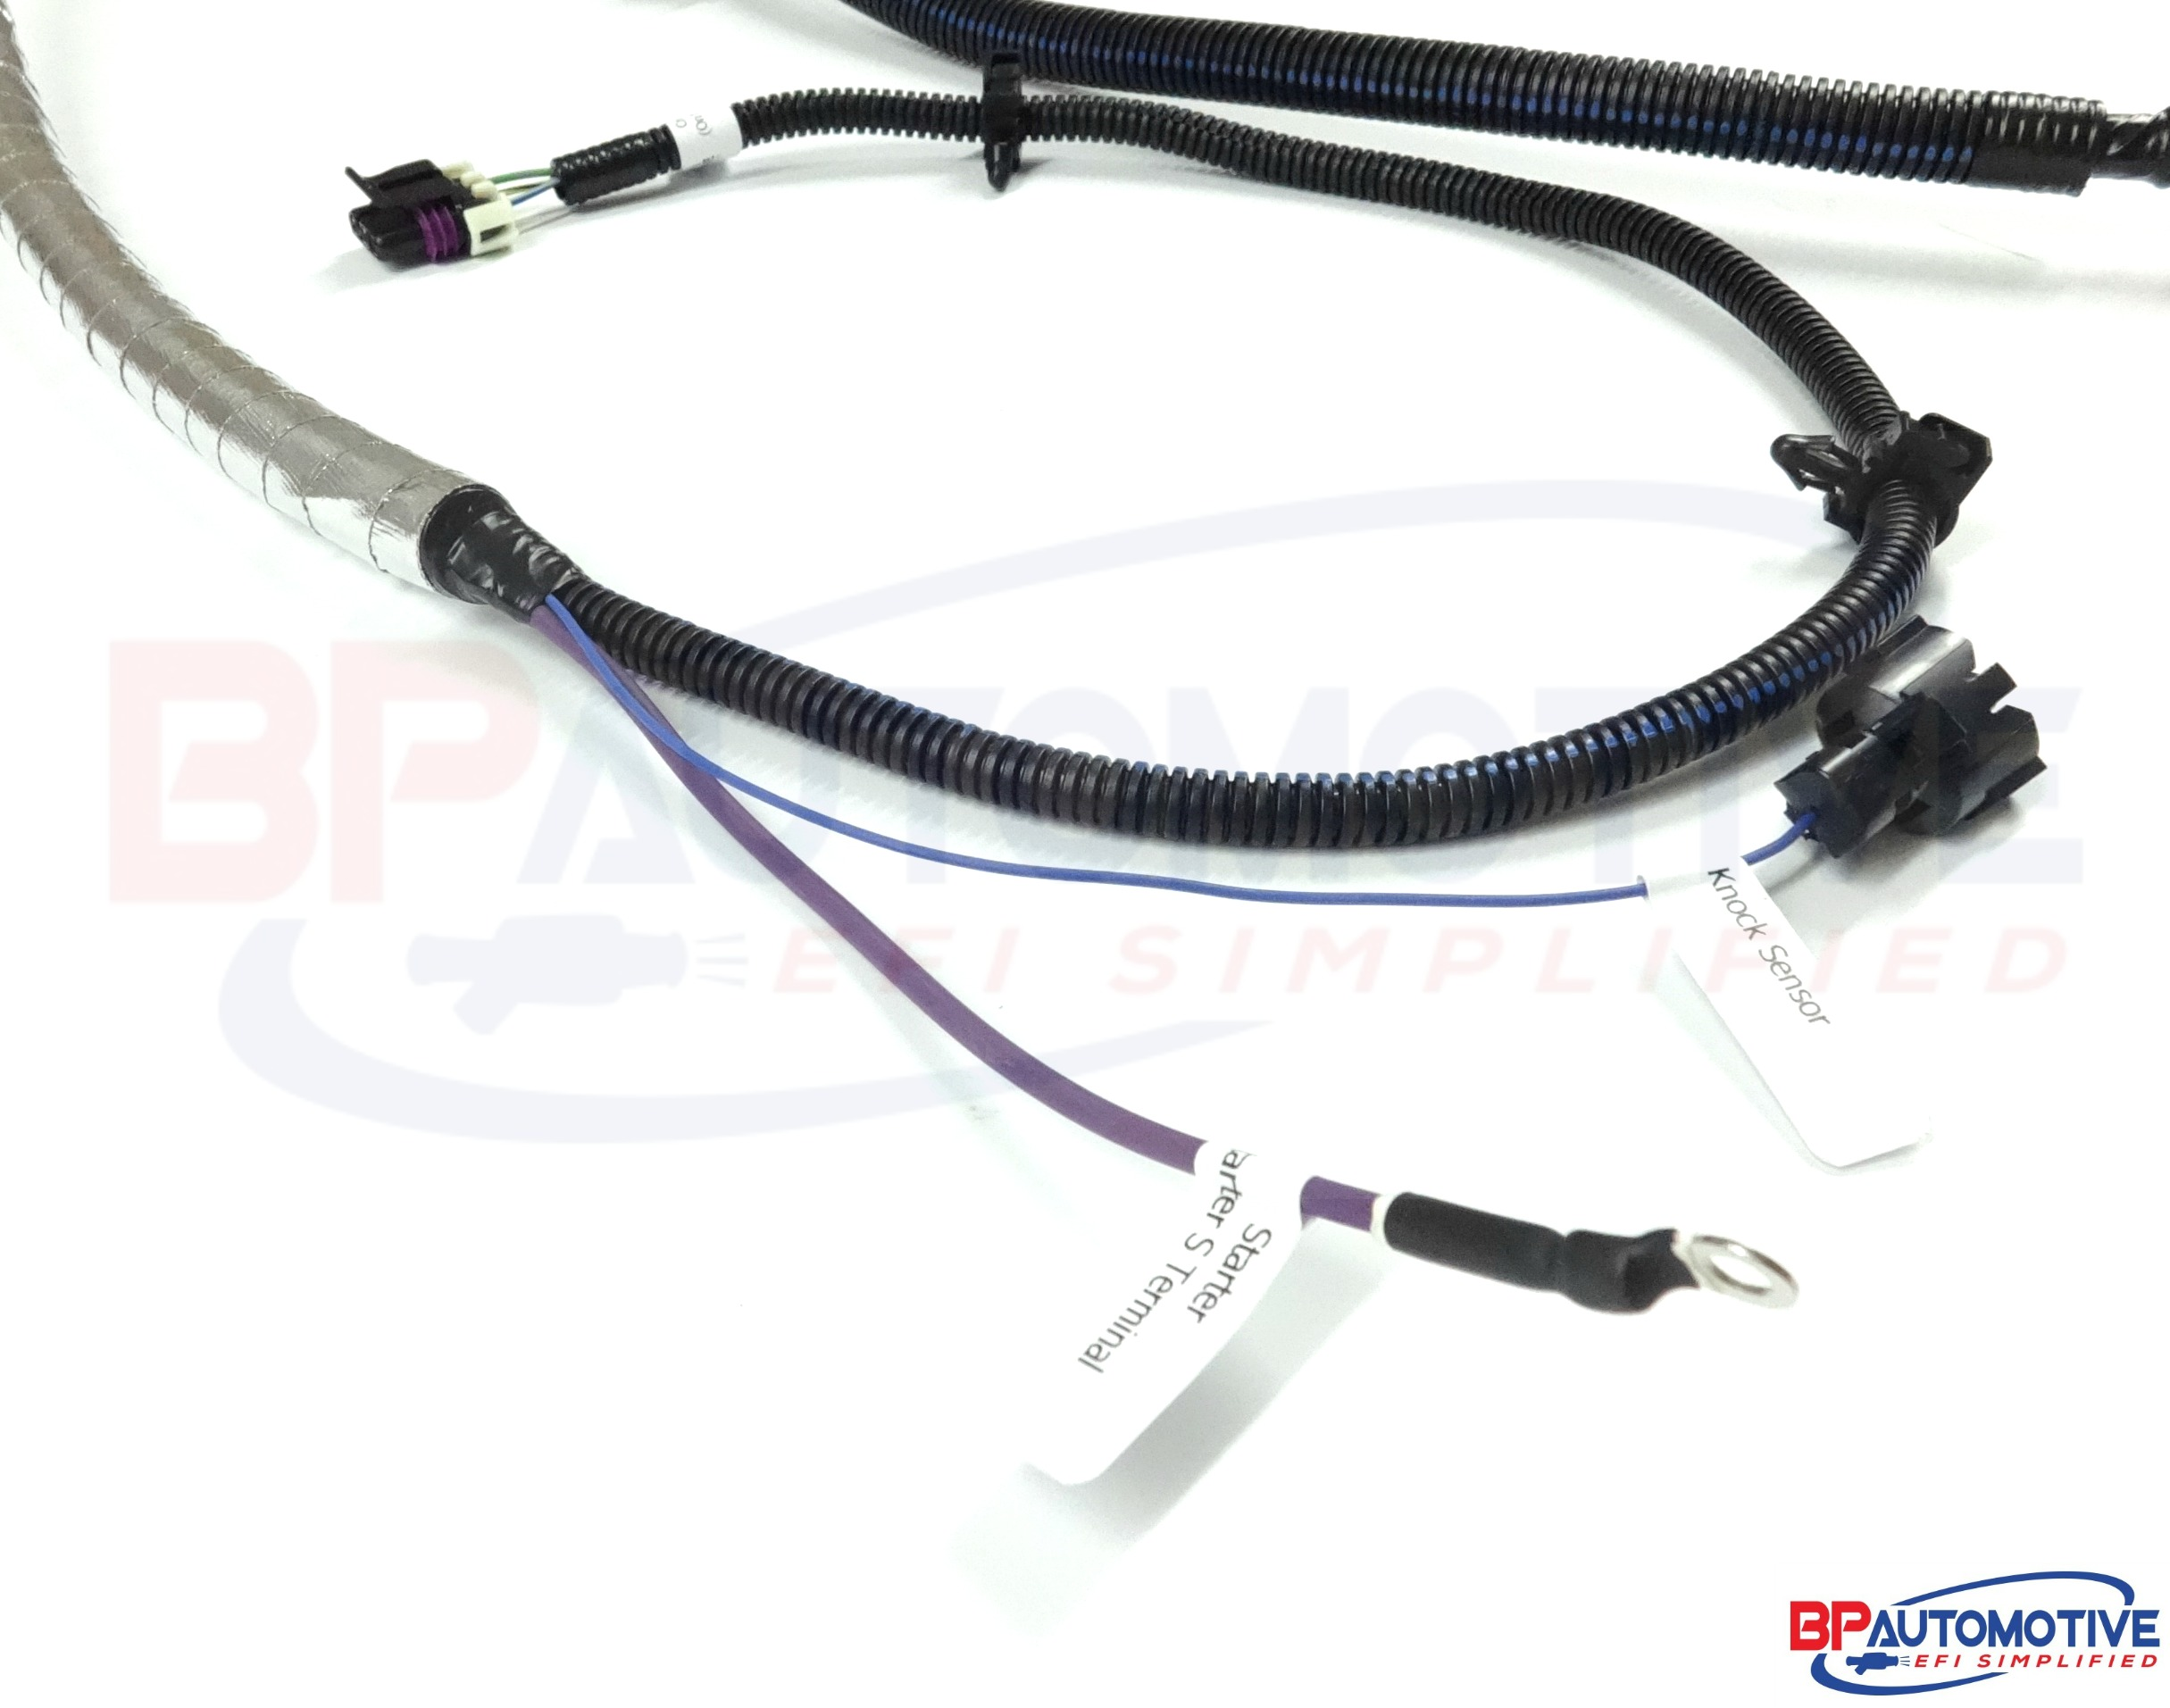 1996 1997 Lt1 F Body Plug And Play 24x Conversion Harness With T56 Wiring H710 Picture 3 Watermark